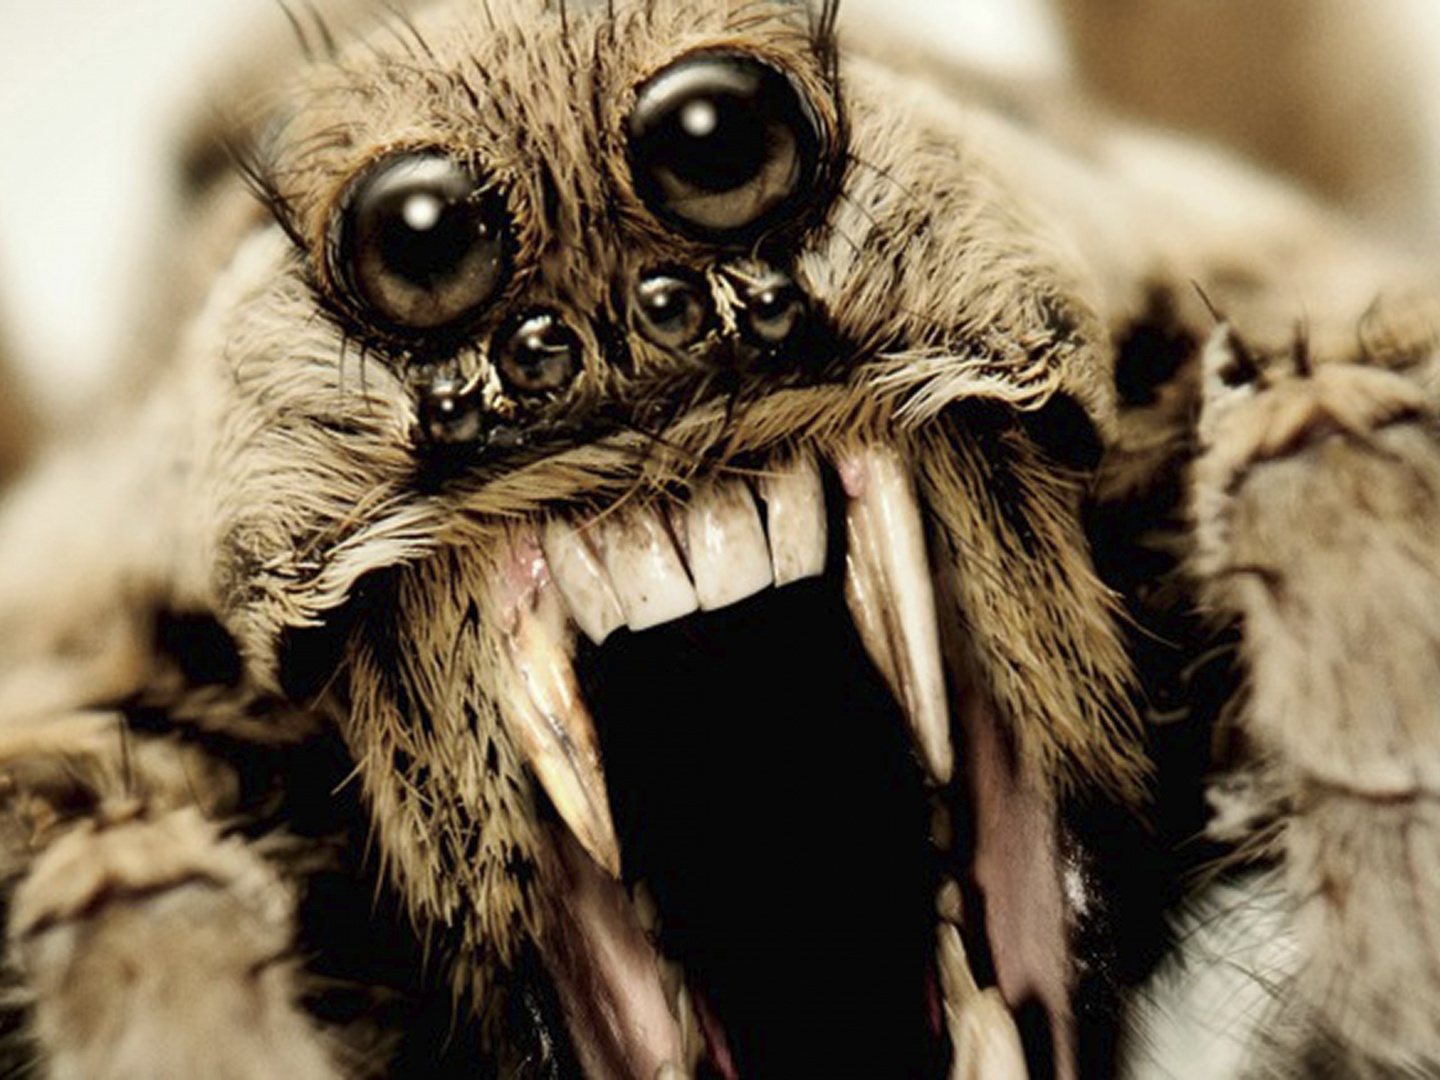 Image for American Horror Story - Roanoke teaser billboard (wolf spider)